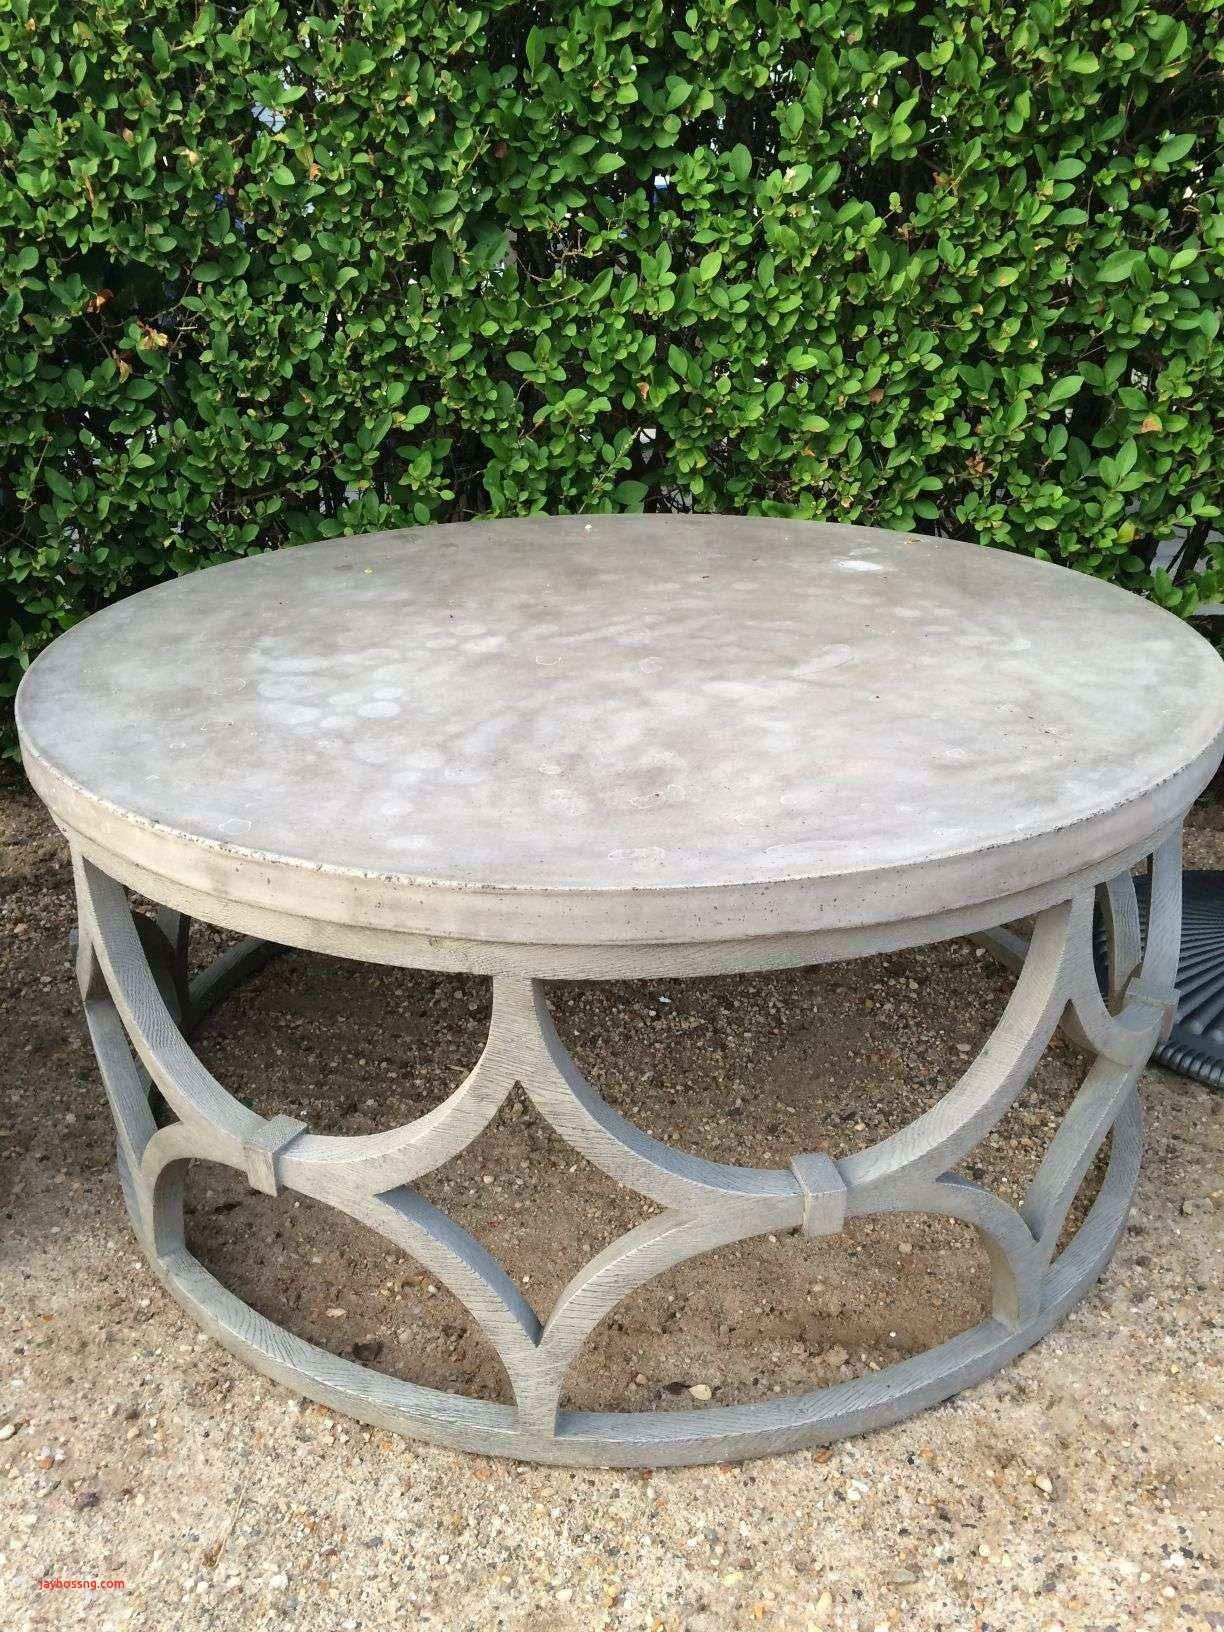 Table Legs Middle Rowan Od Small Outdoor Coffee Table Concrete Round